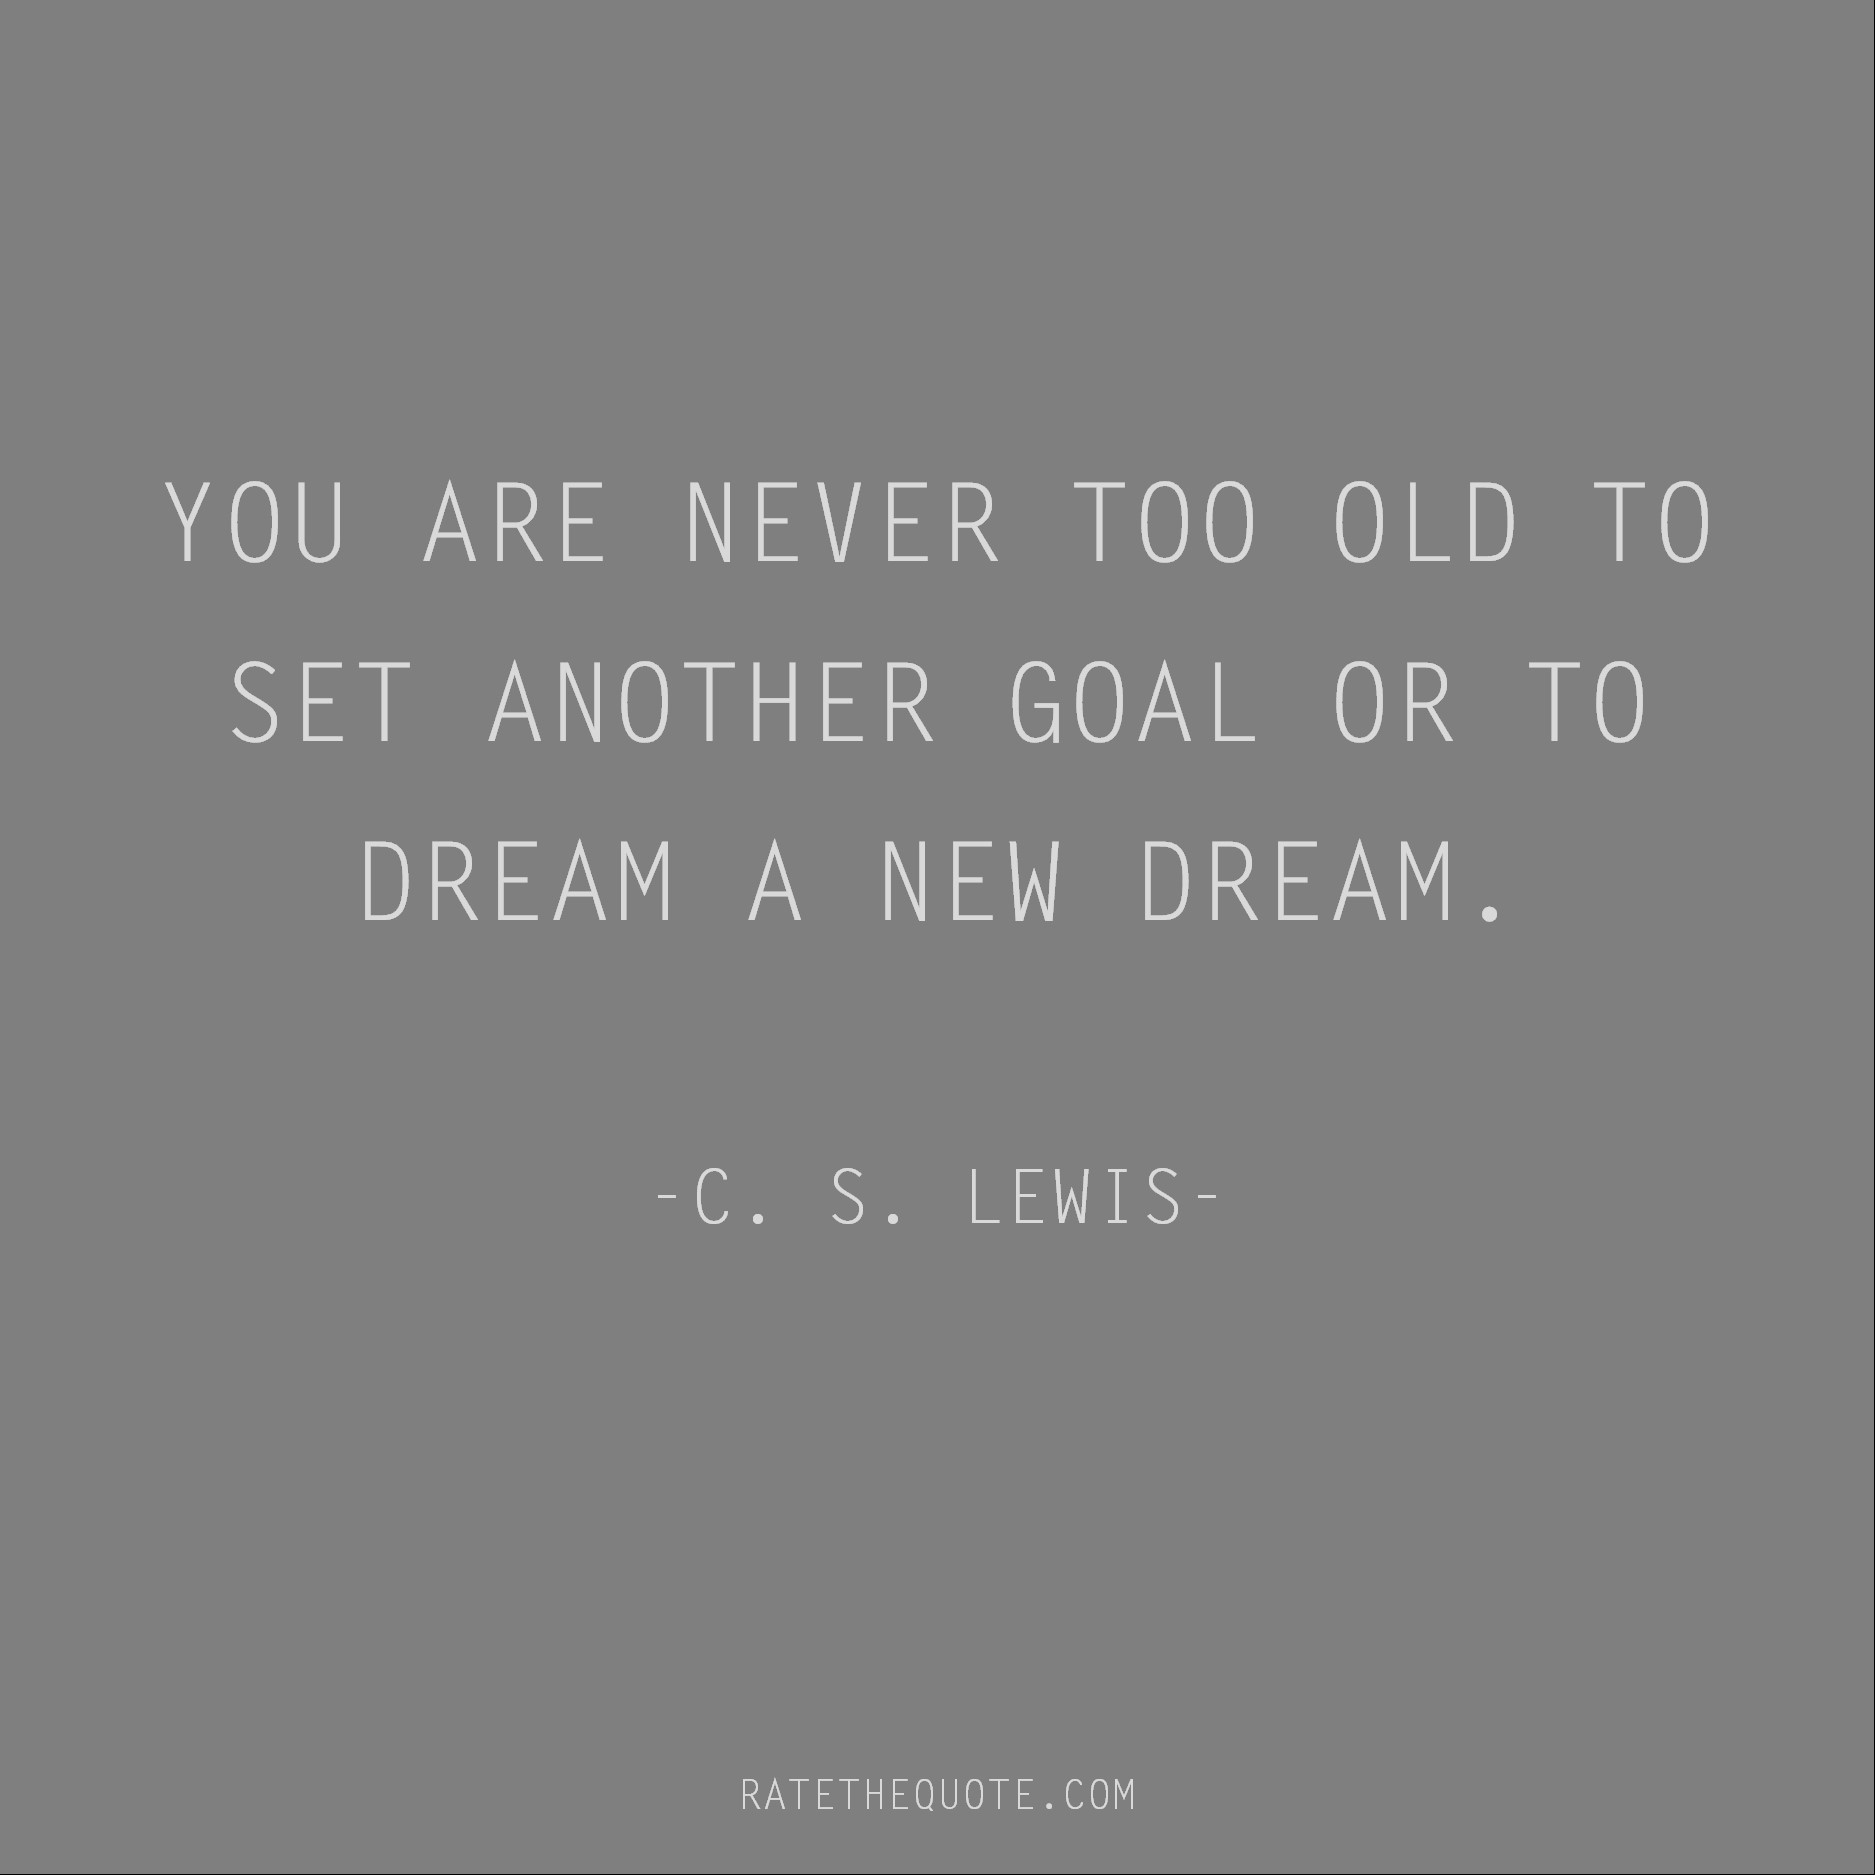 Motivational Quotes YOU ARE NEVER TOO OLD TO SET ANOTHER GOAL OR TO DREAM A NEW DREAM. -C. S. LEWIS-